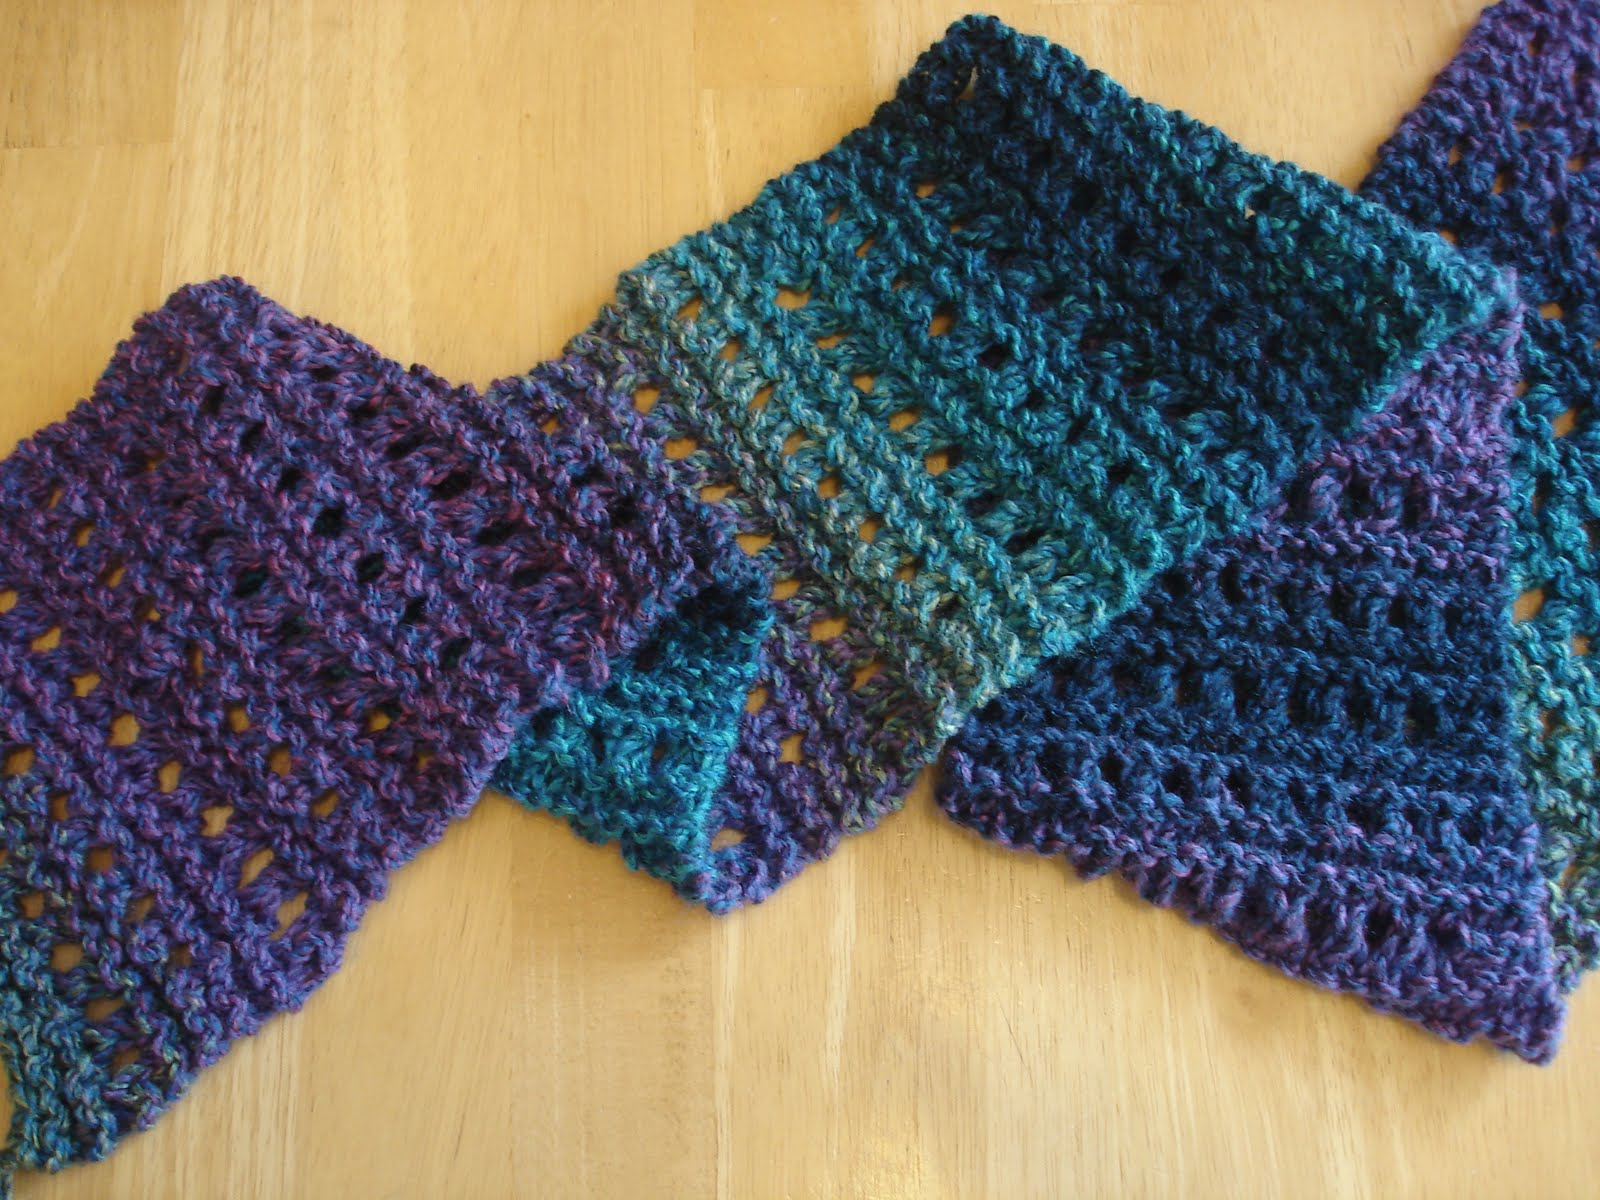 Hat Scarf Knitting Patterns Free : Fiber Flux: Free Knitting Pattern: Tweedy Eyelet Scarf!